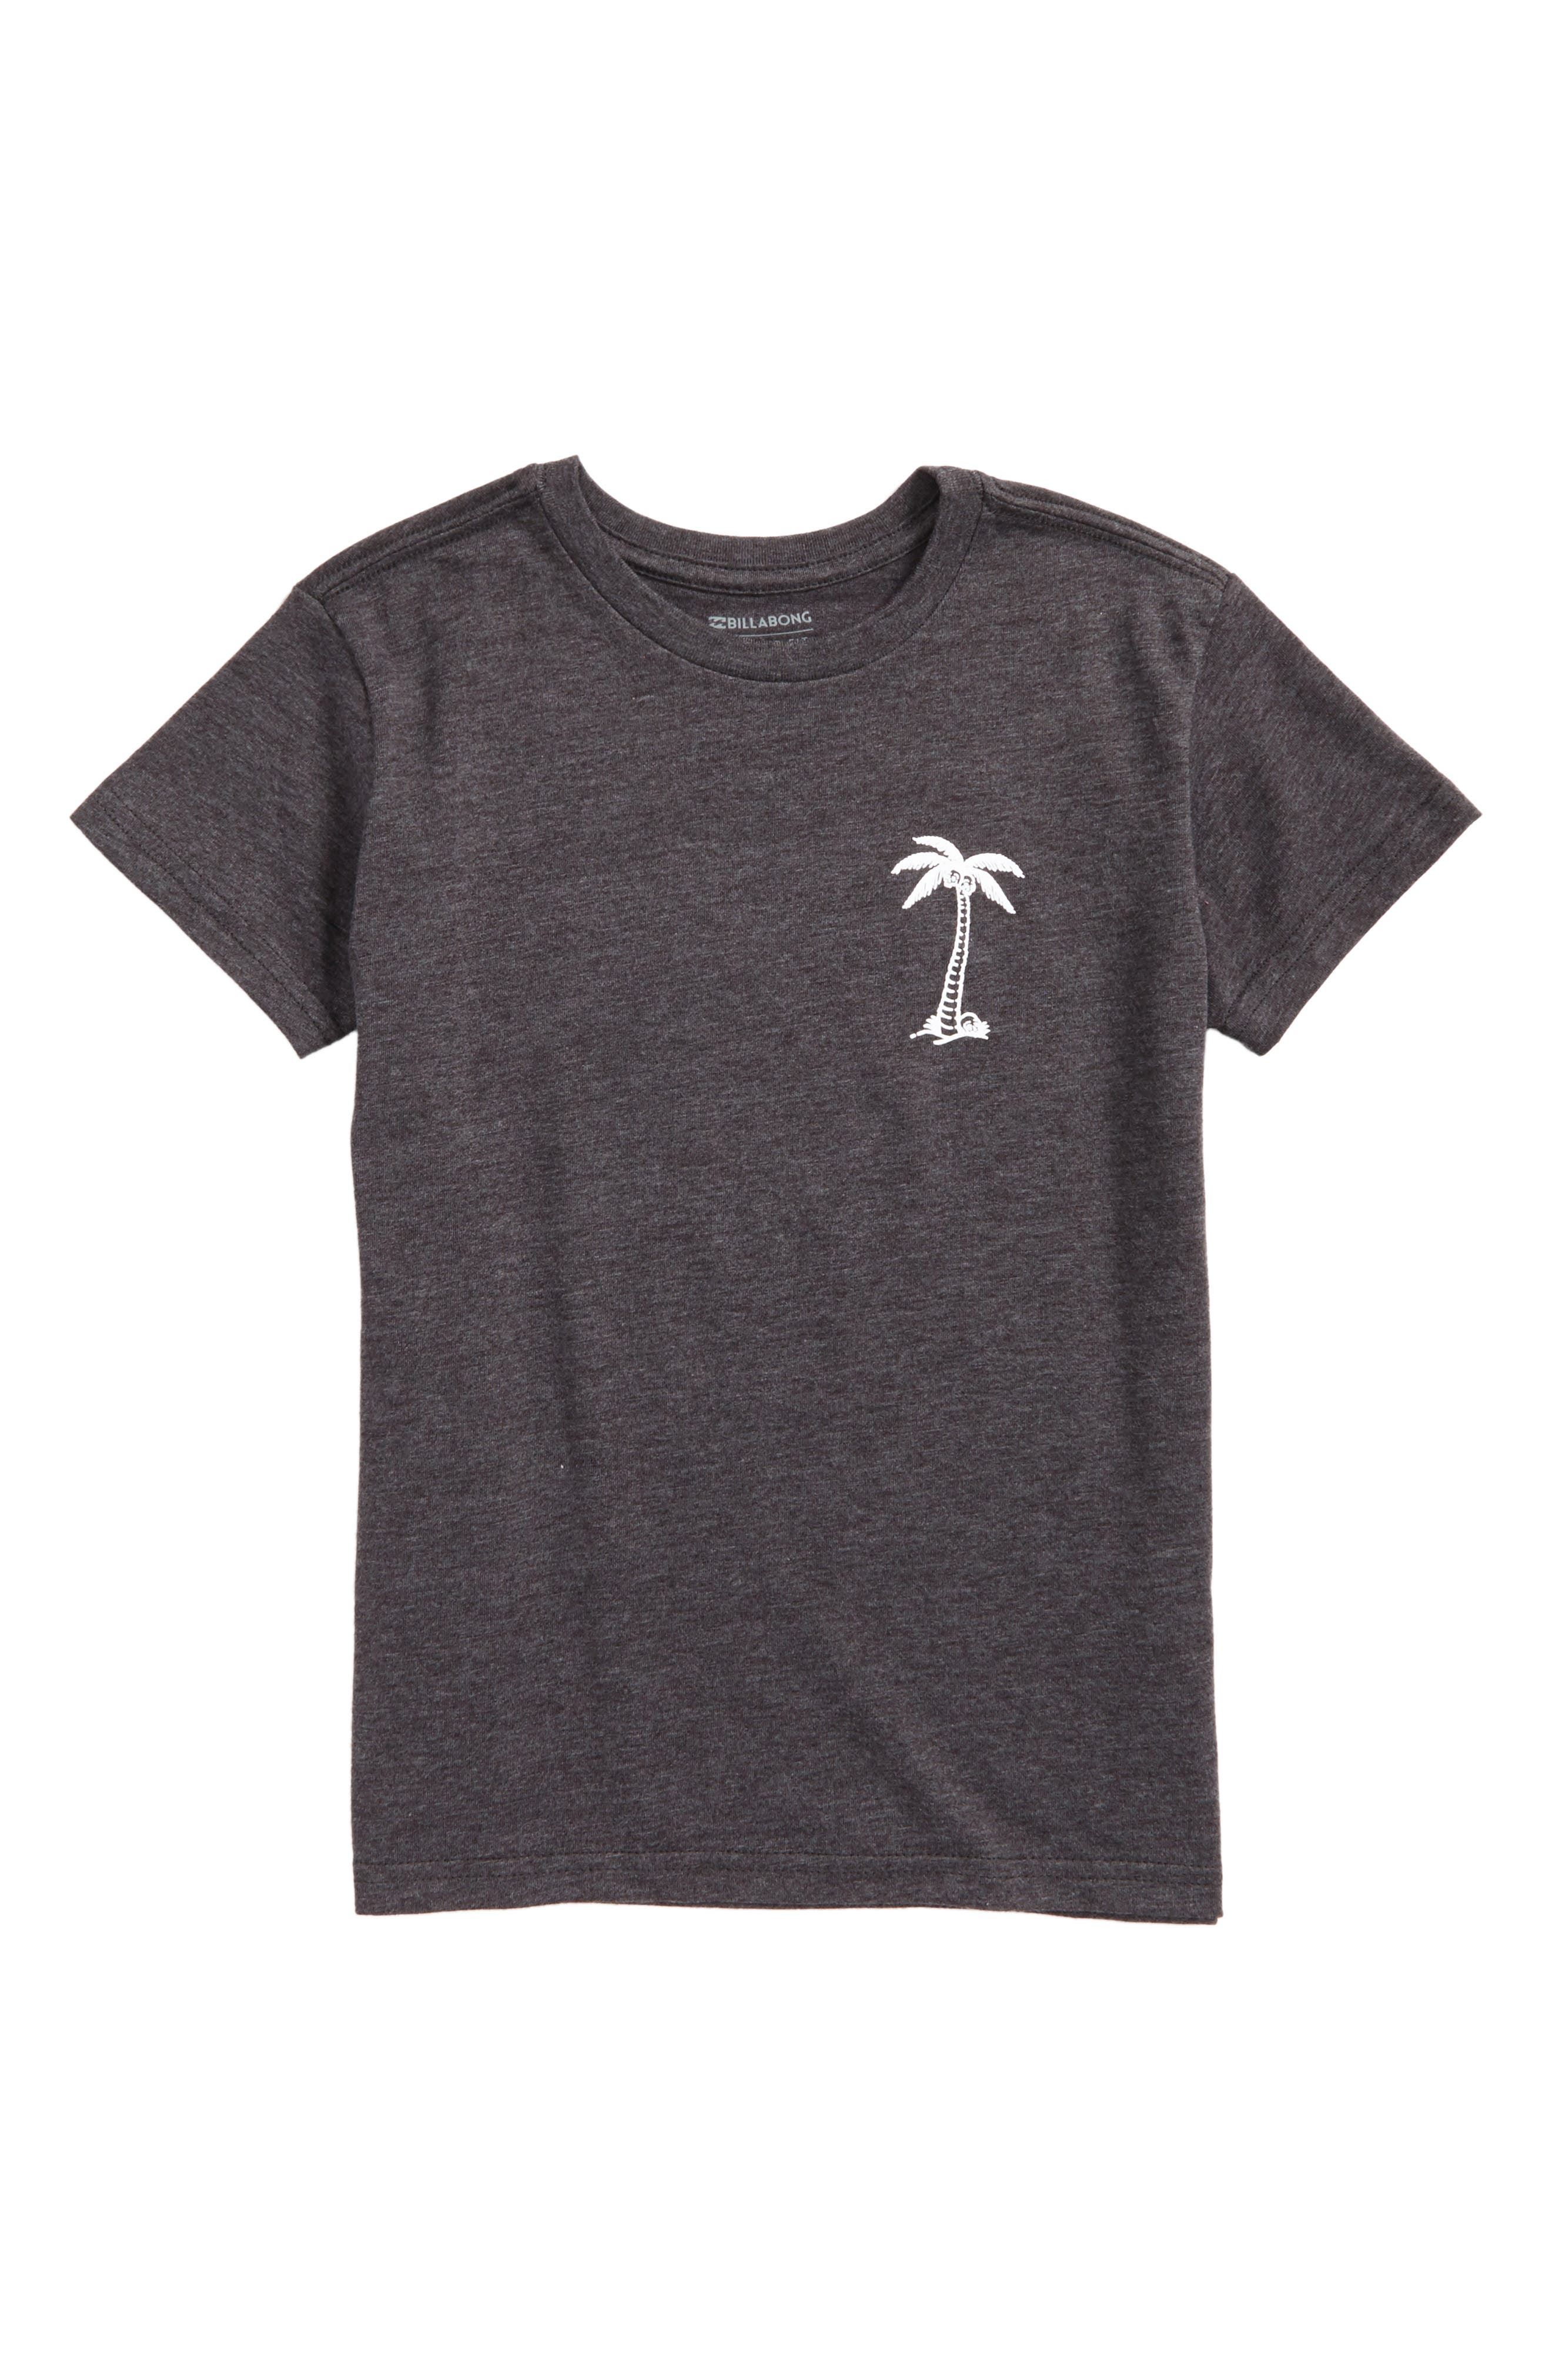 BBTV Palm Tree Graphic T-Shirt,                         Main,                         color,